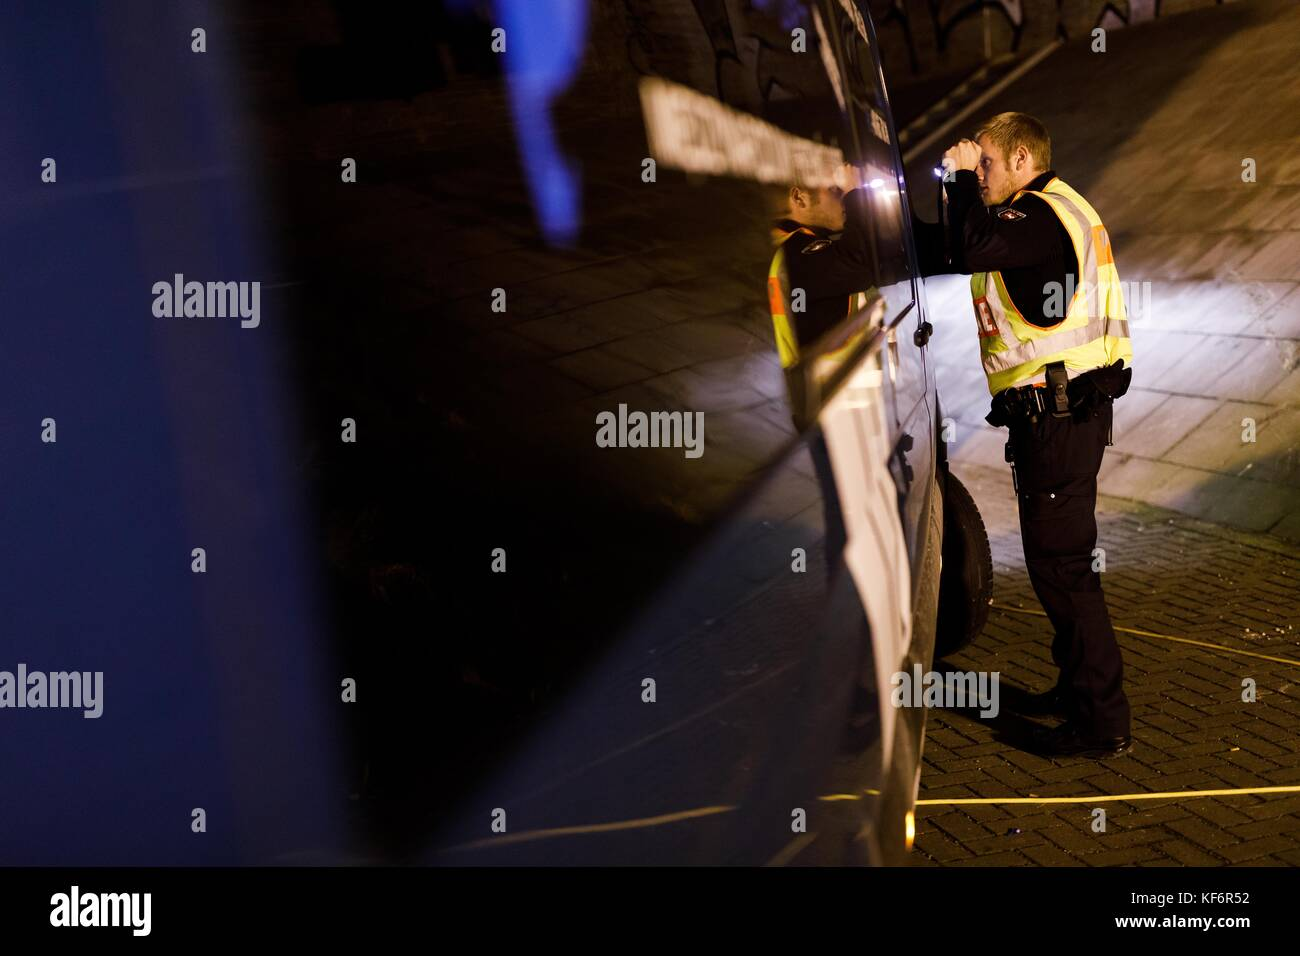 Police officers carry out roadside inspections of vehicles passing through Lehrte, Germany, 26 October 2017. The - Stock Image